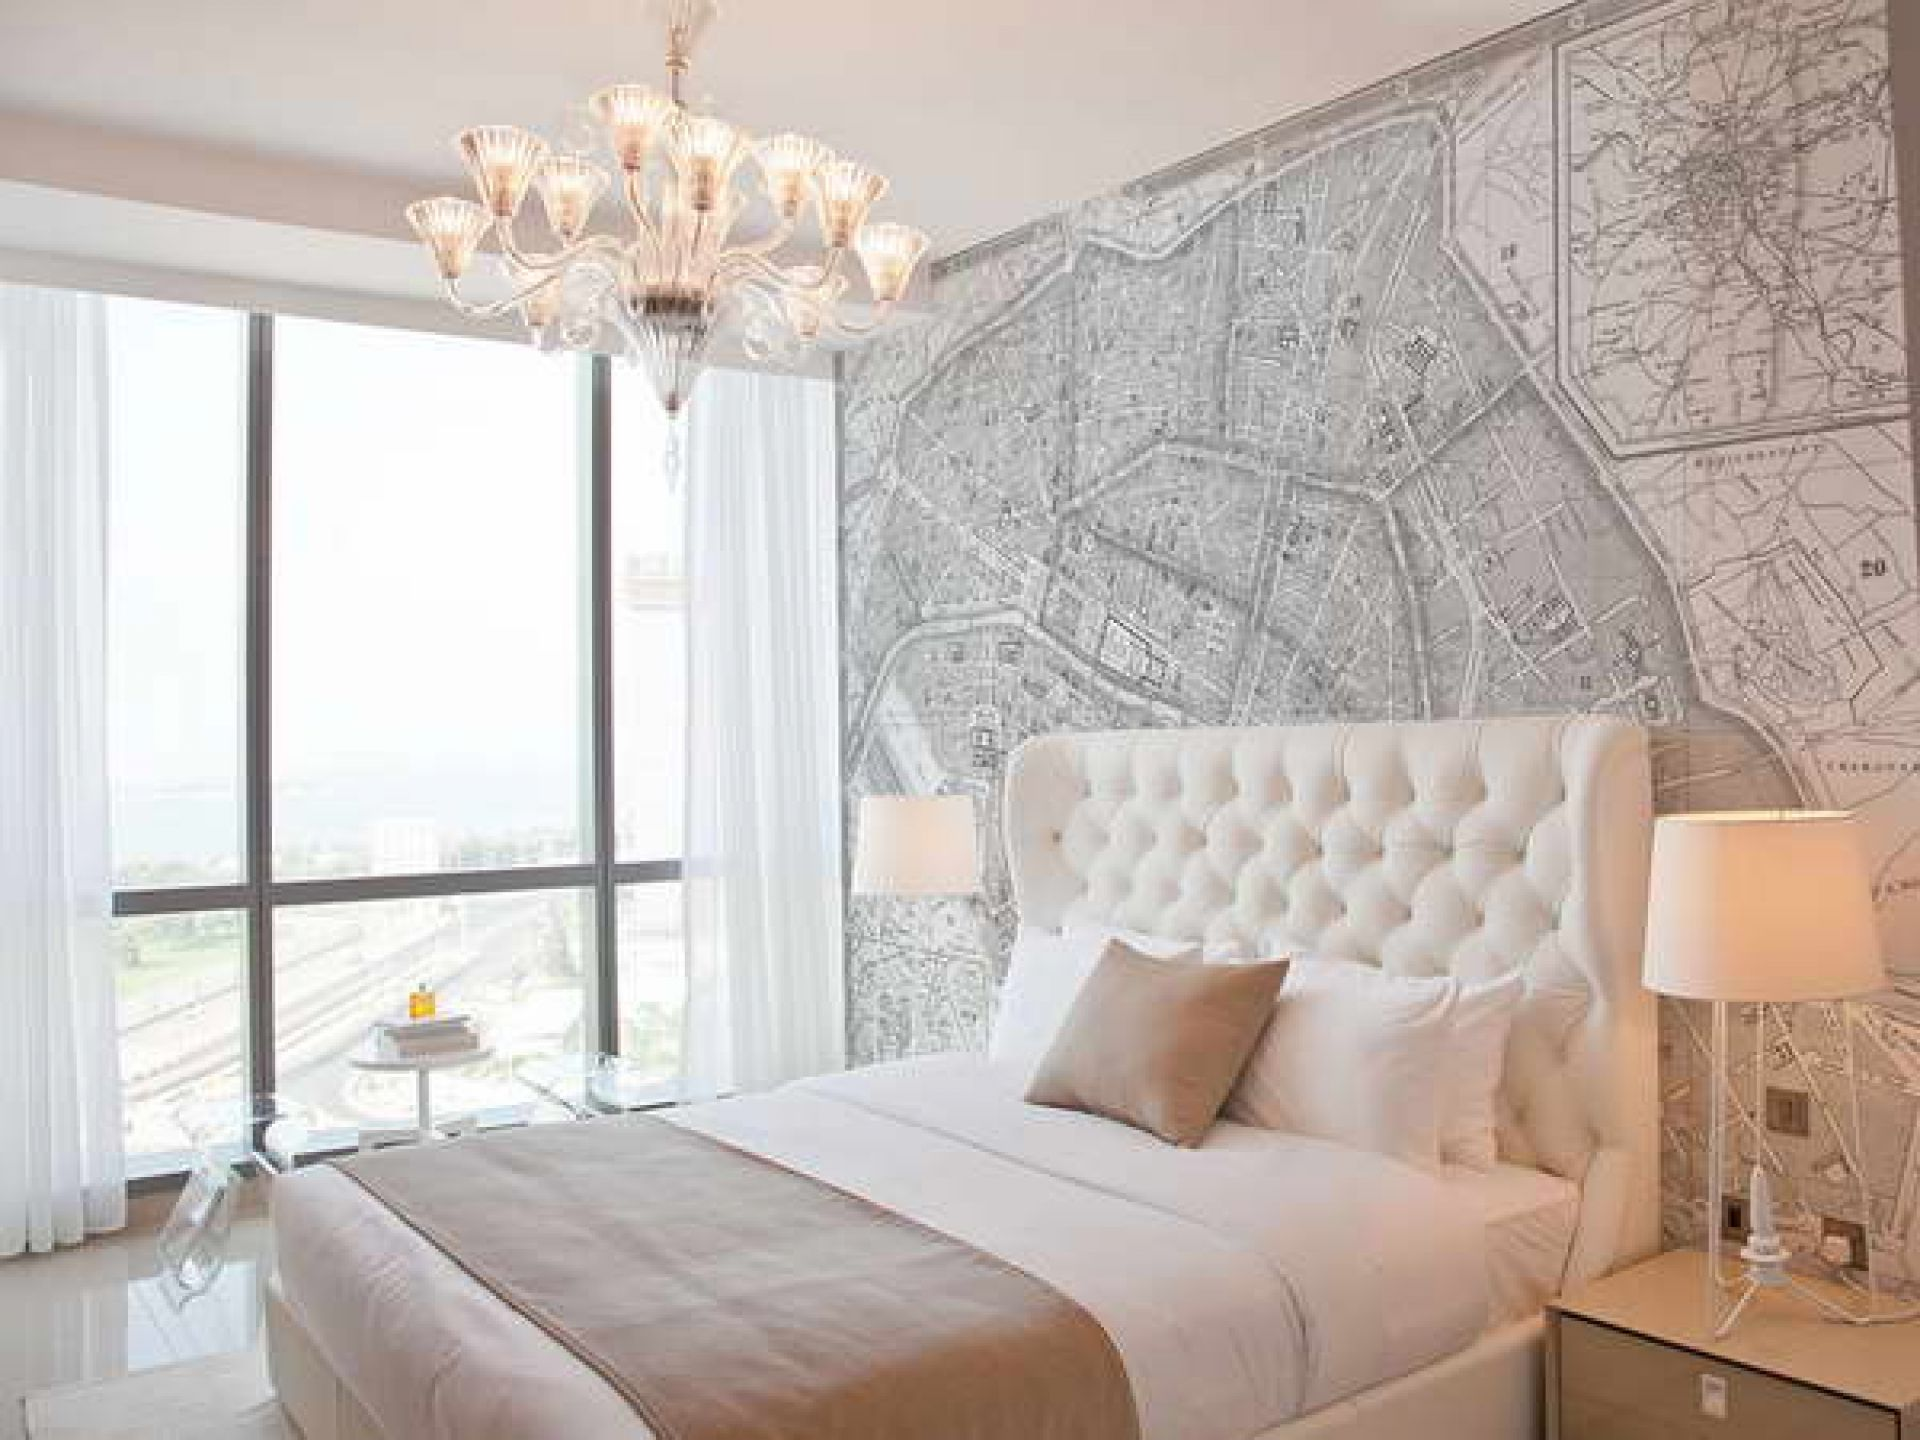 Awesome Via Design Sponge Jess Loras   Beautiful City Bedroom Design With Vintage  Map Wallpaper, Modern Platform Bed, Gray Flannel Blanket, Taupe Pillows And  Black ...